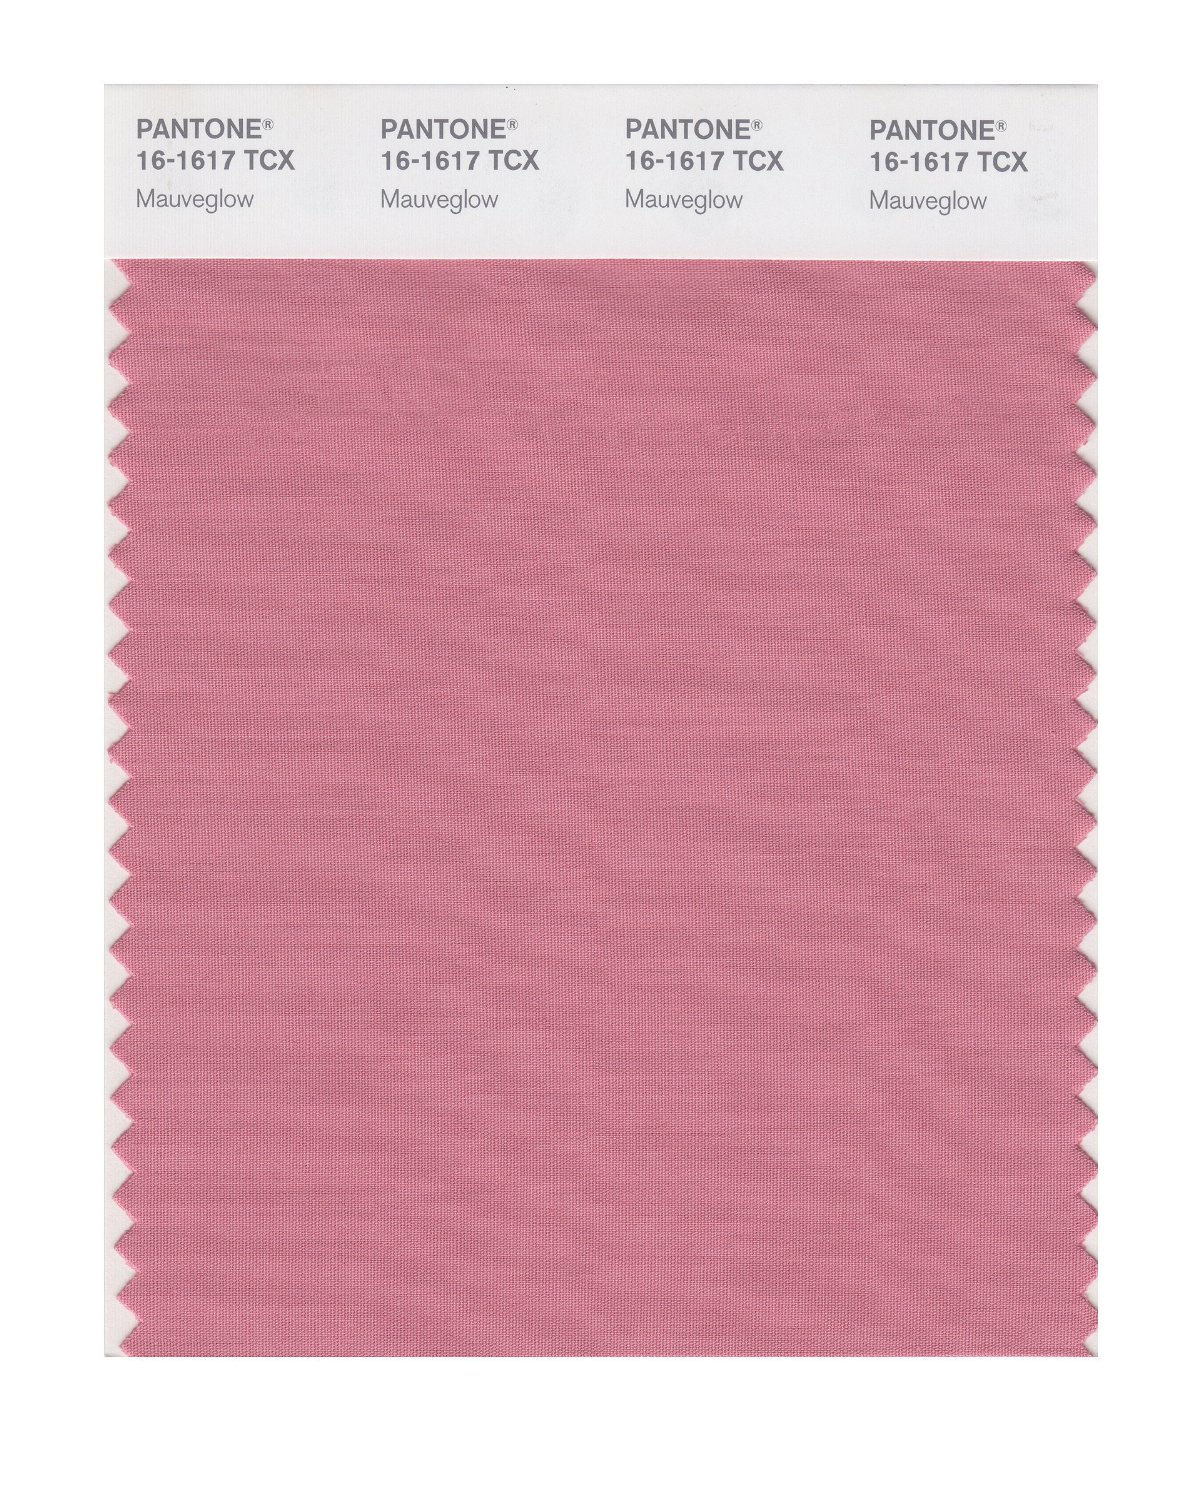 Pantone Smart Swatch 16-1617 Mauveglow